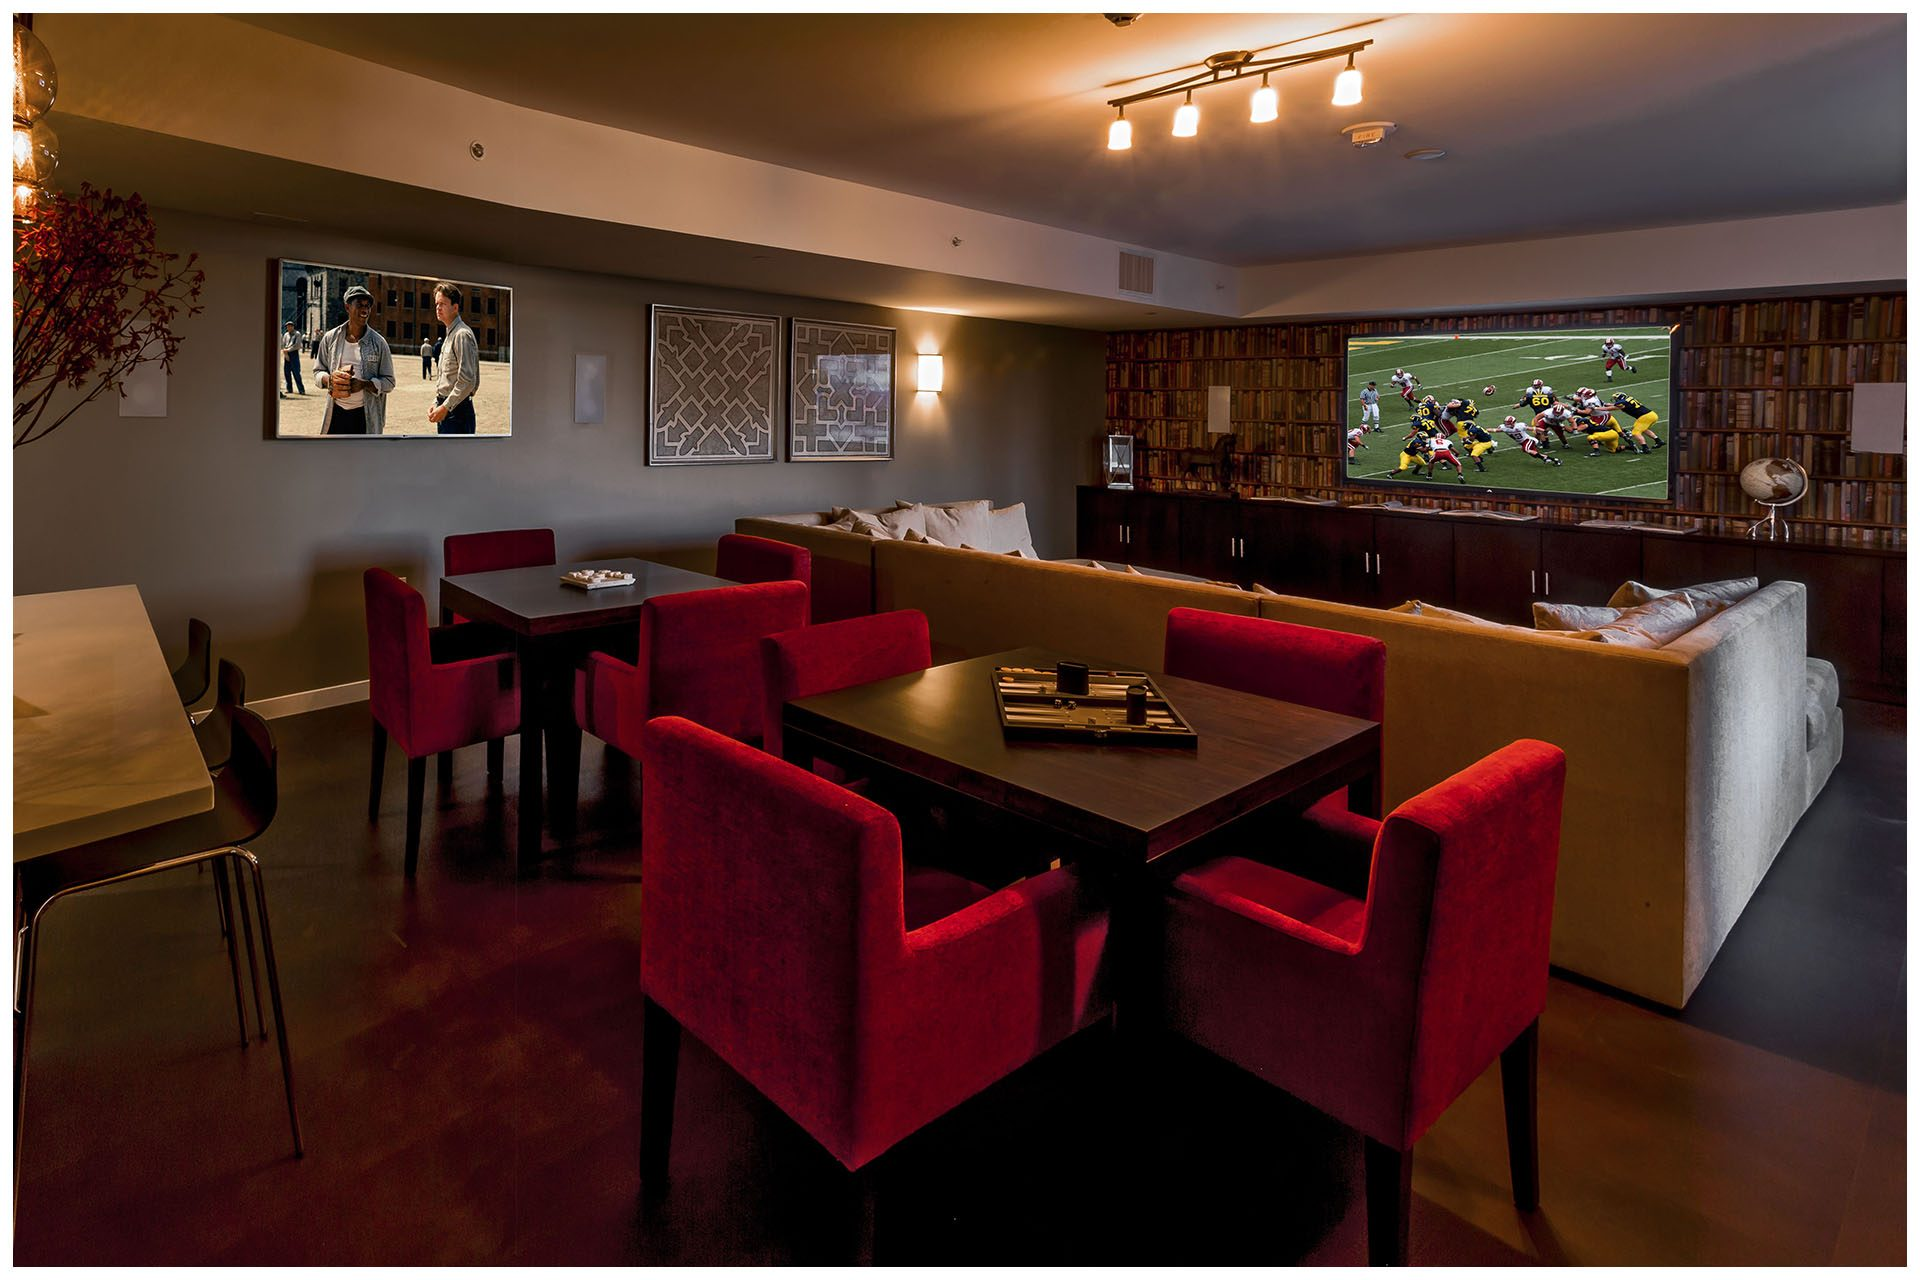 LOUNGE PROVISIONSBusiness Lounge or Game Lounge Audio Video Provisions & Enterprise Grade WiFi. Audio Video provisions are controlled via an in-room wall-mounted iPad and remotely from leasing office iPad. In-room iPad allows a limited range of volume change for music.